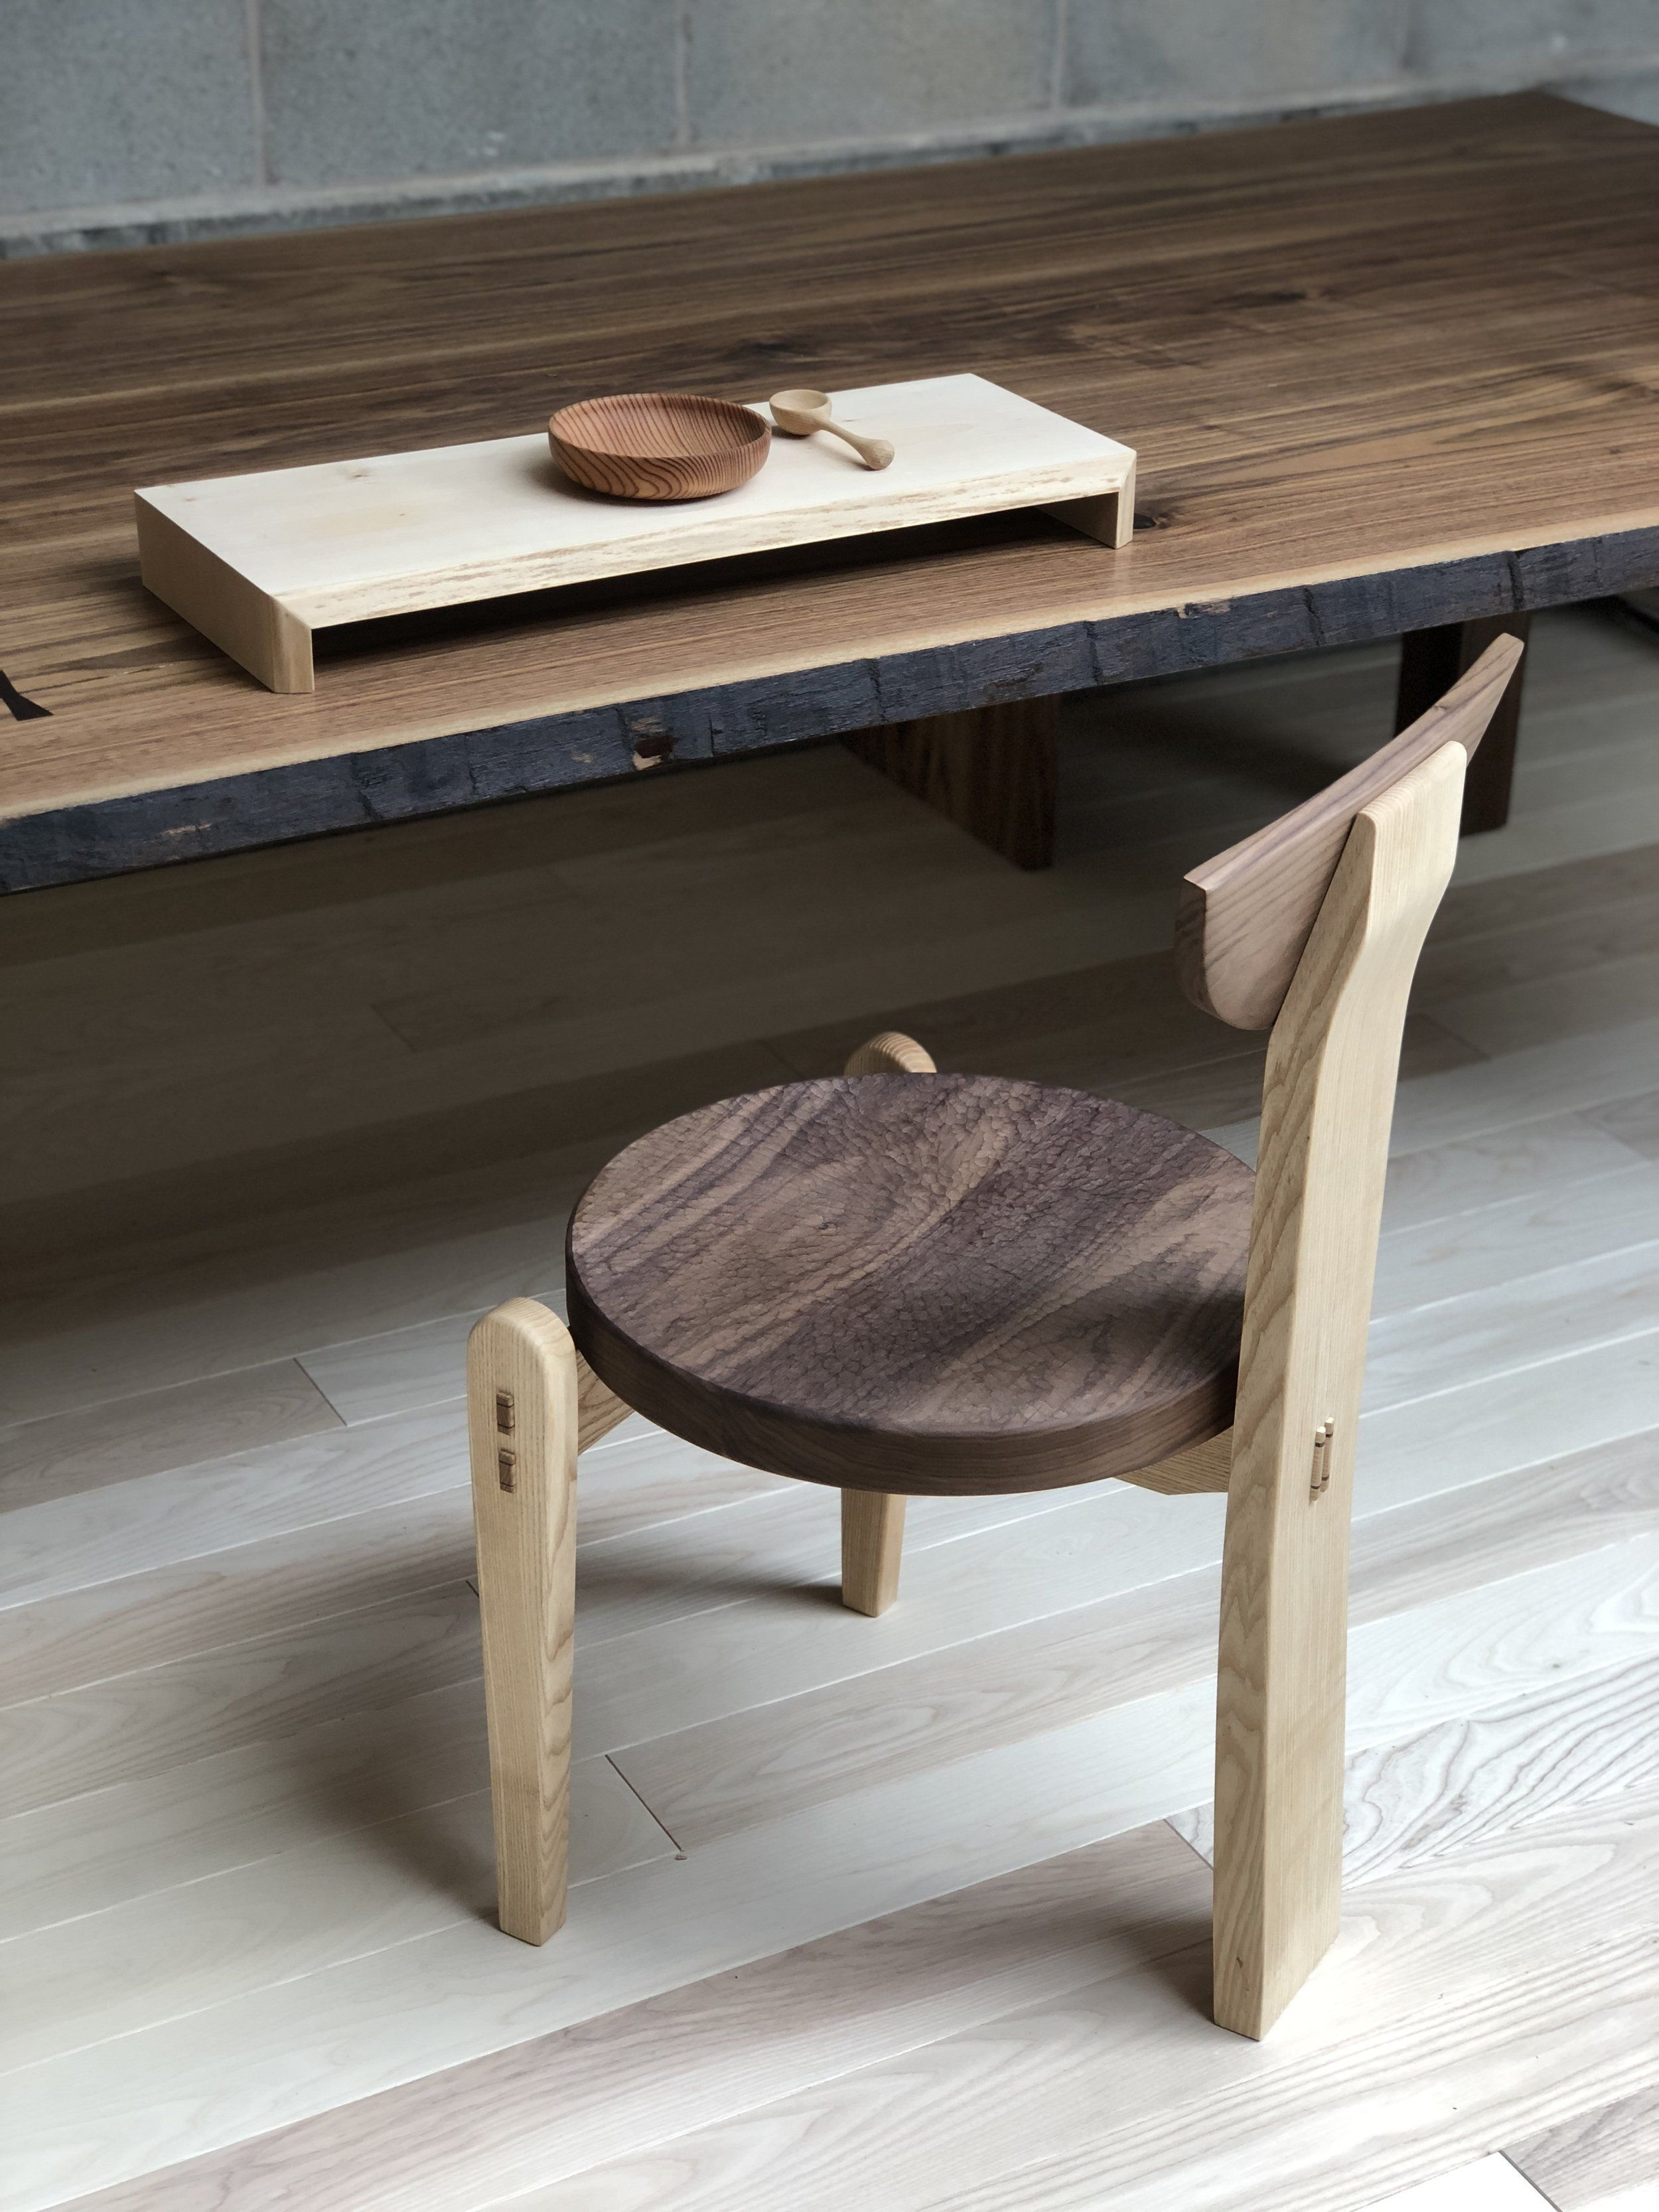 Takumi Woodwork Show How Japanese Style Woodworking Should Be Done Sawdust Etc In 2020 Woodworking Furniture Plans Japanese Woodworking Plans Woodworking Cabinets